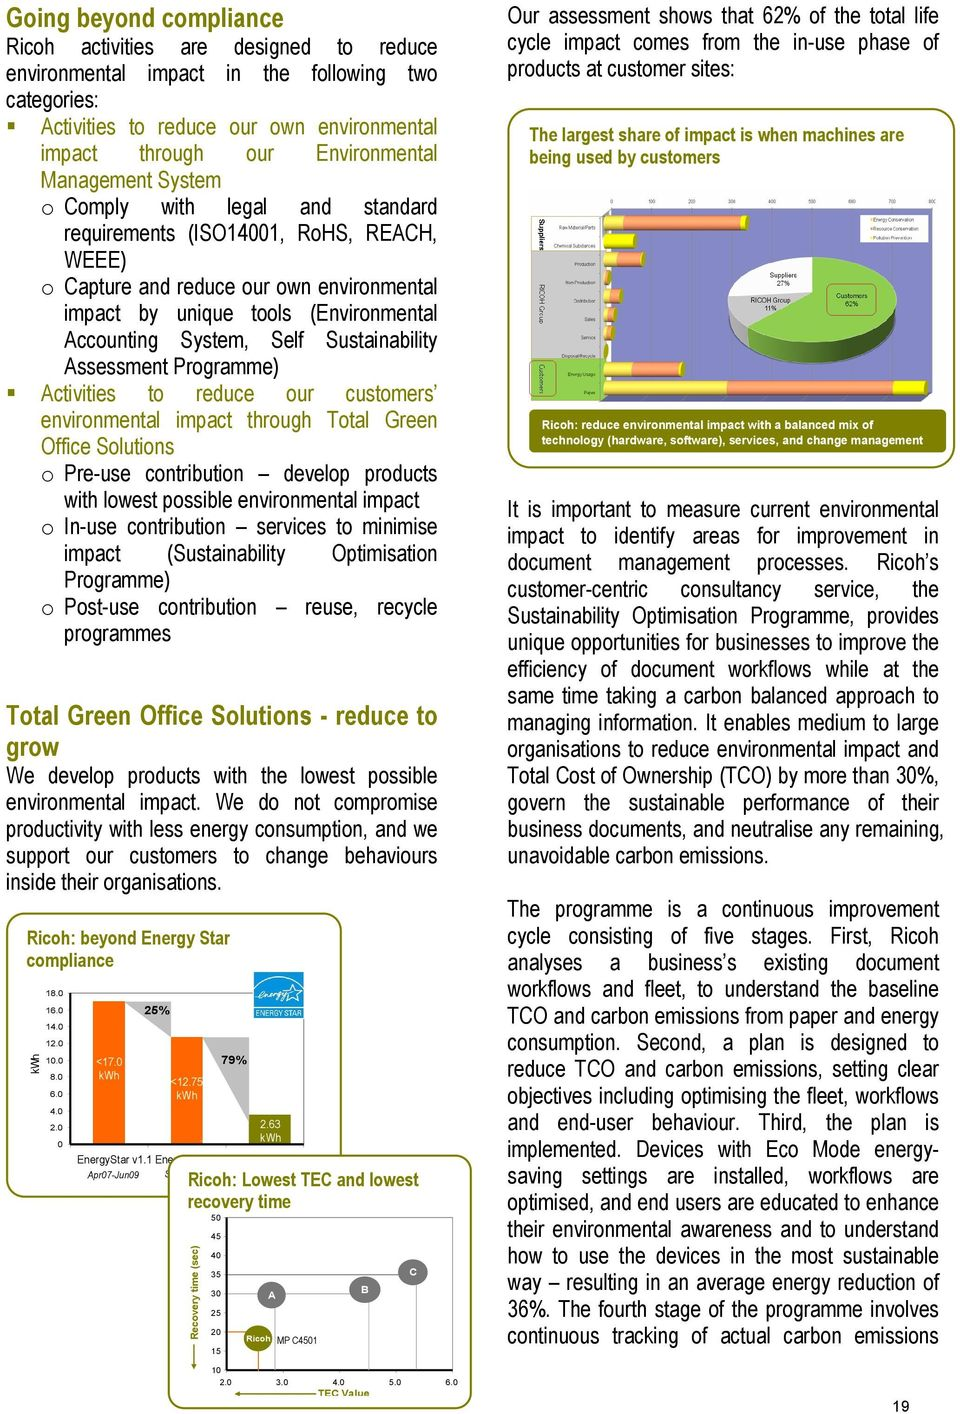 Sustainability Assessment Programme) Activities to reduce our customers environmental impact through Total Green Office Solutions o Pre-use contribution develop products with lowest possible